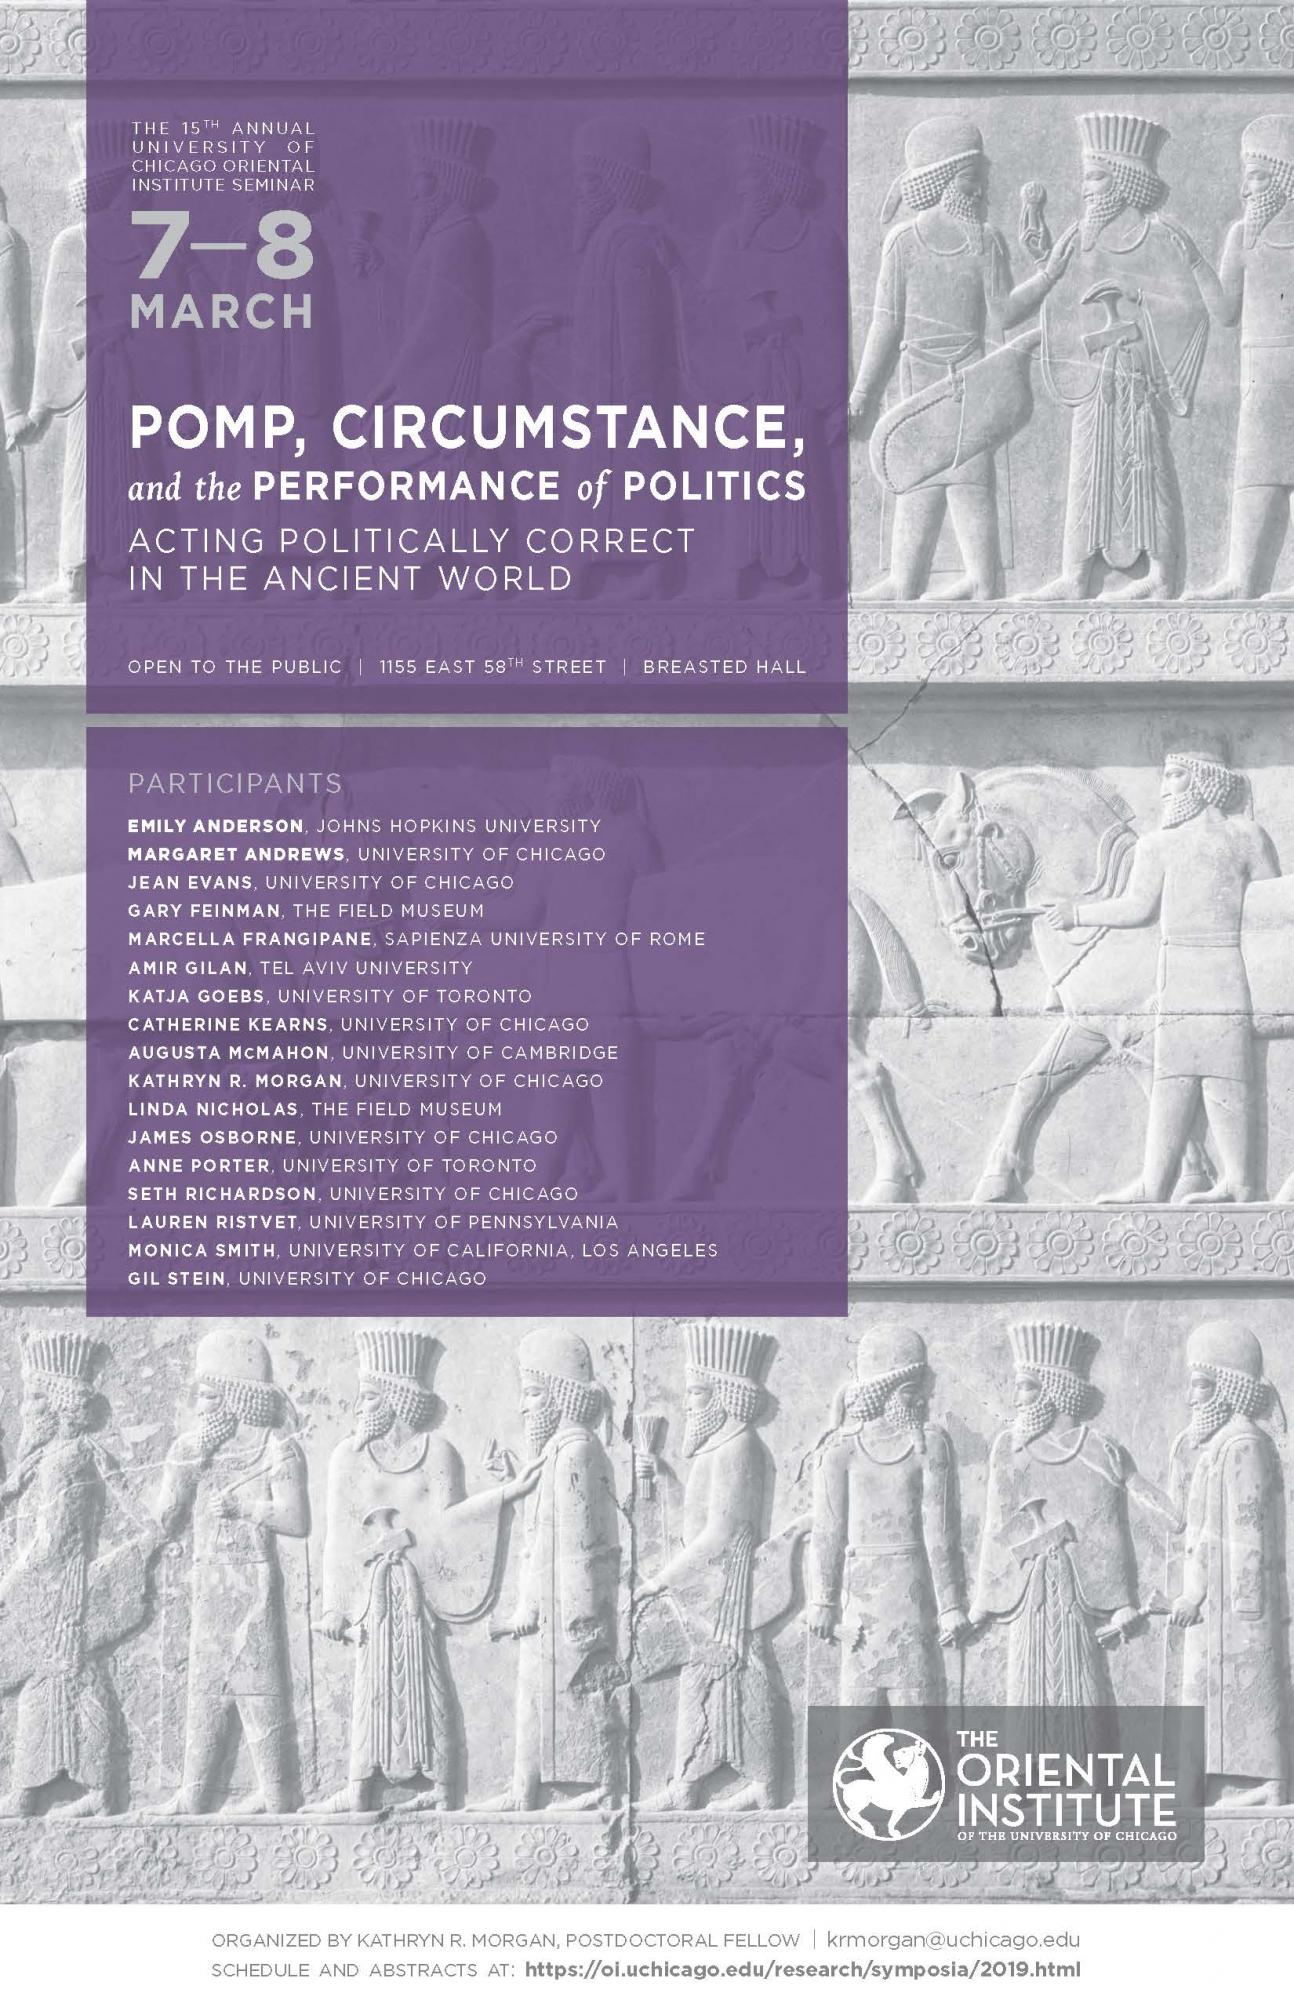 Pomp, Circumstance, and the Performance of Politics: Acting